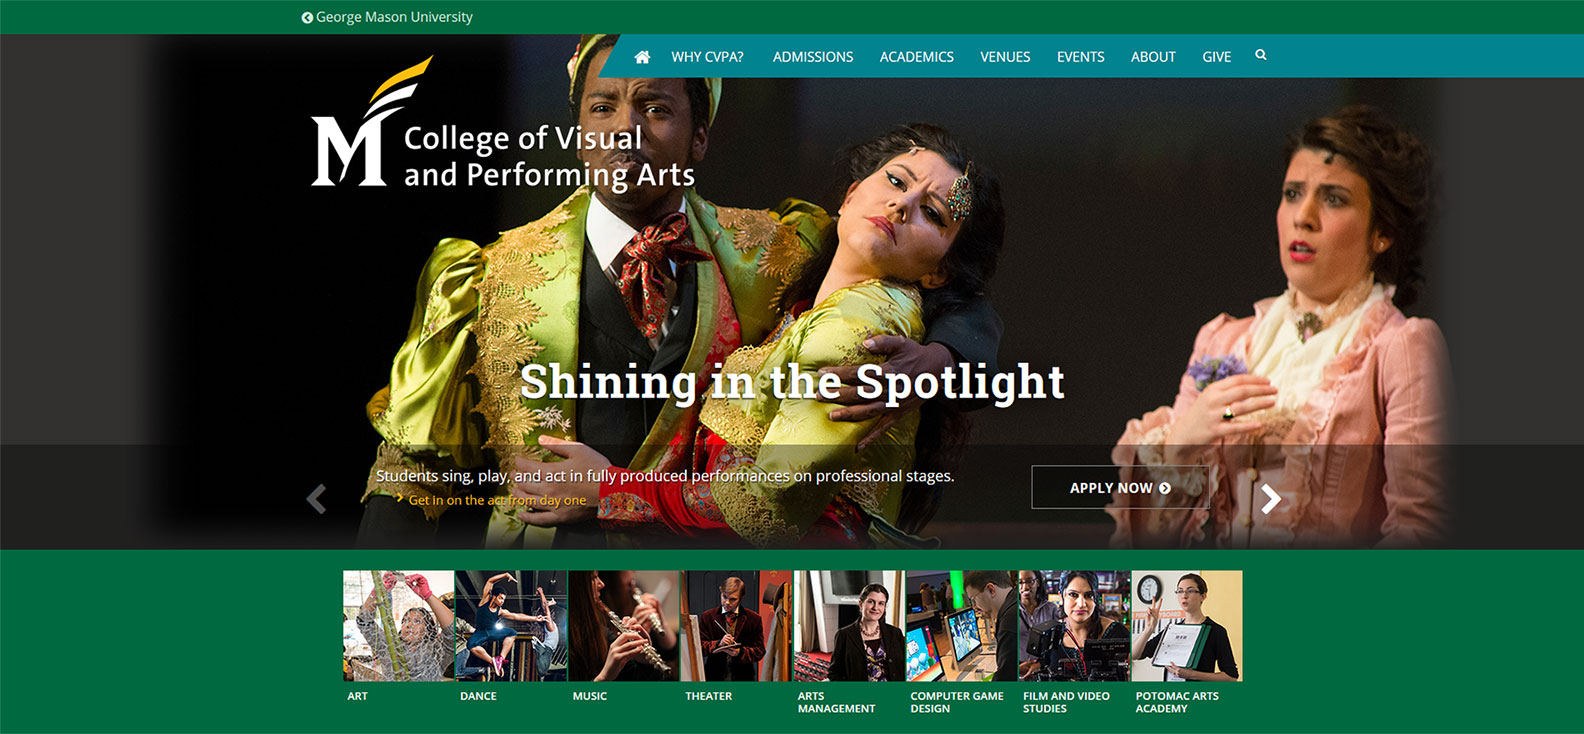 George Mason University, College of Visual and Performing Arts, Virginia